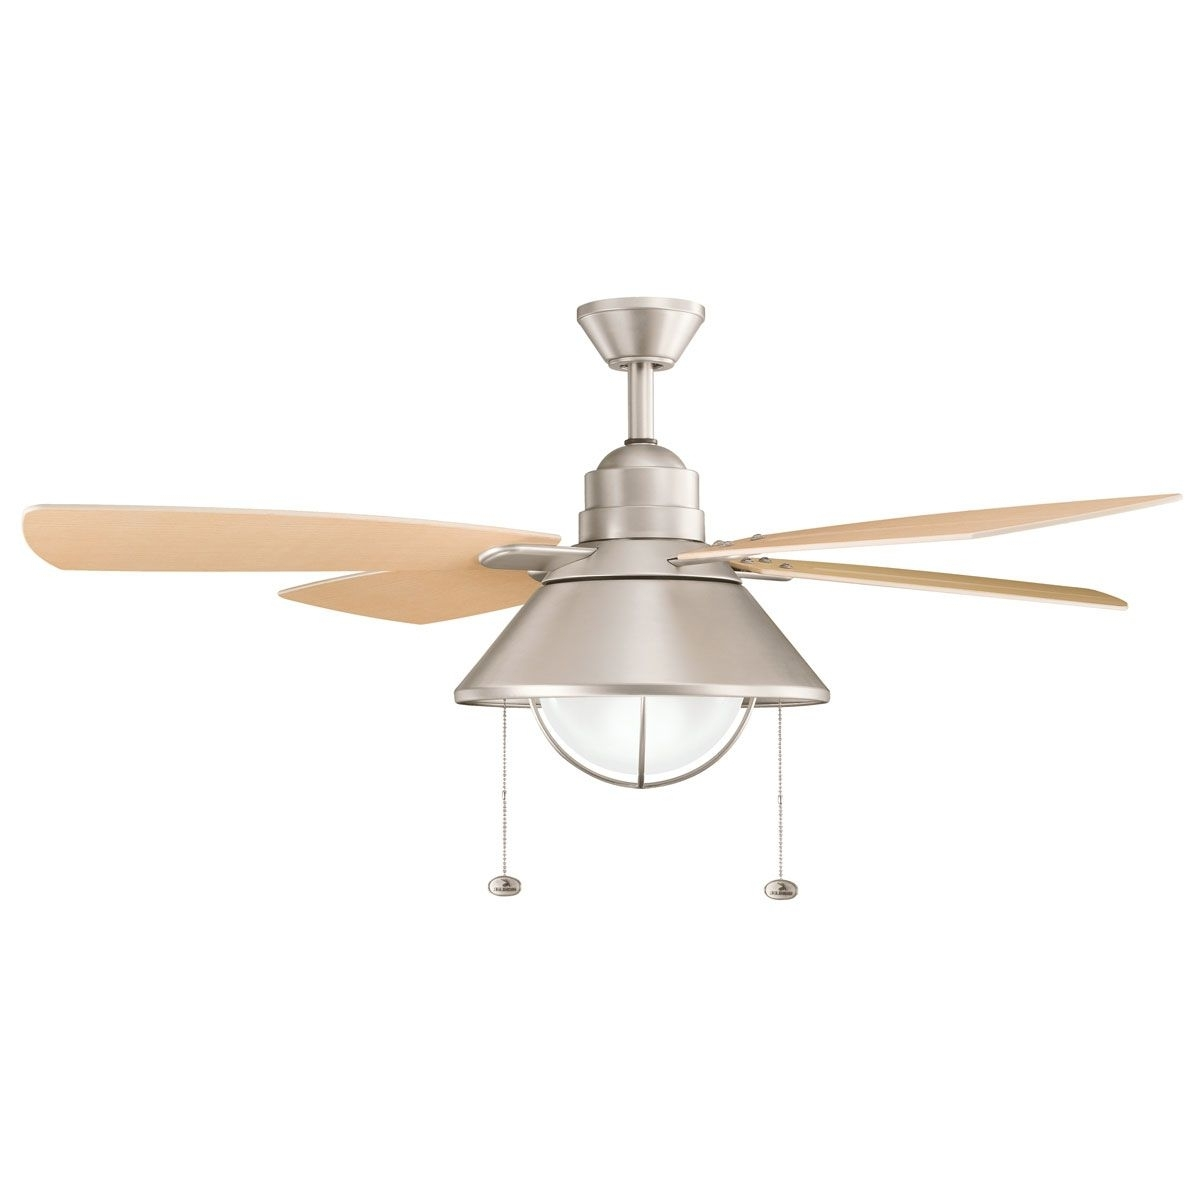 Recent Brushed Nickel Outdoor Ceiling Fans With Light With Regard To Kichler Fans Seaside Ceiling Fan In Brushed Nickel (View 4 of 20)